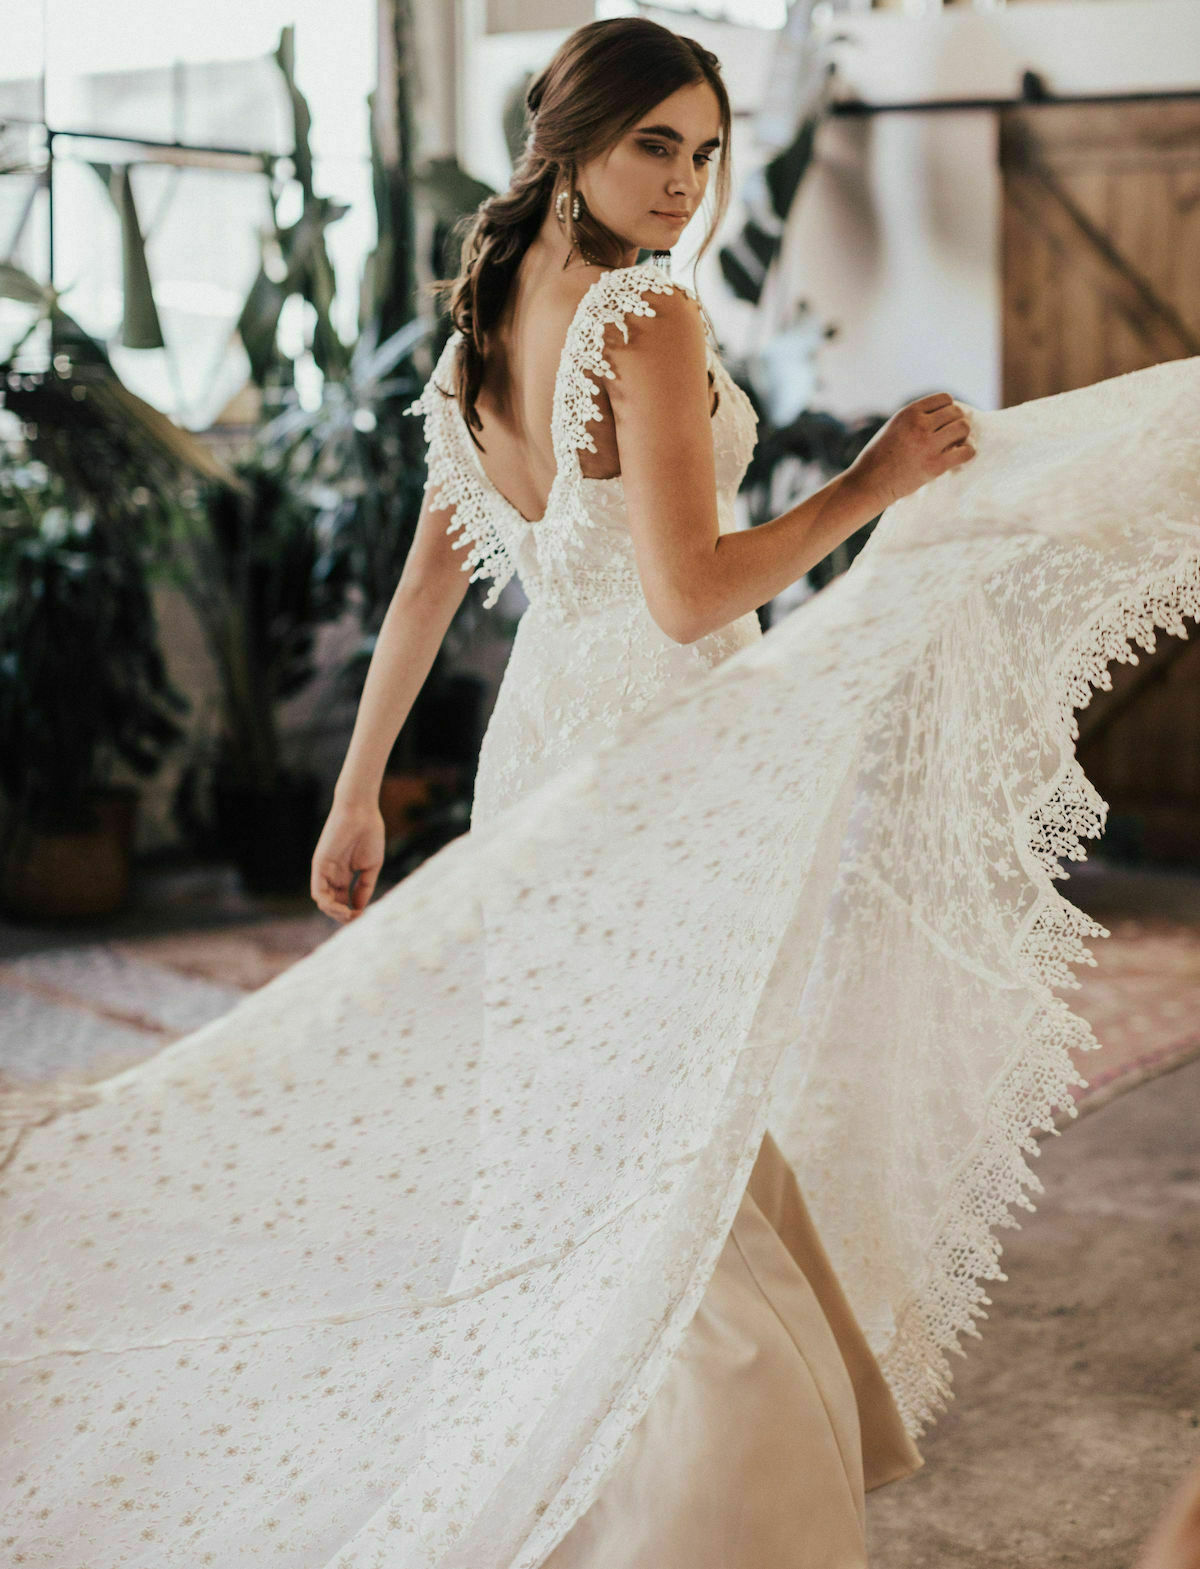 Discover-the-Perla-Simple-Wedding-Dress-crafted-from-delicate-cotton-lace